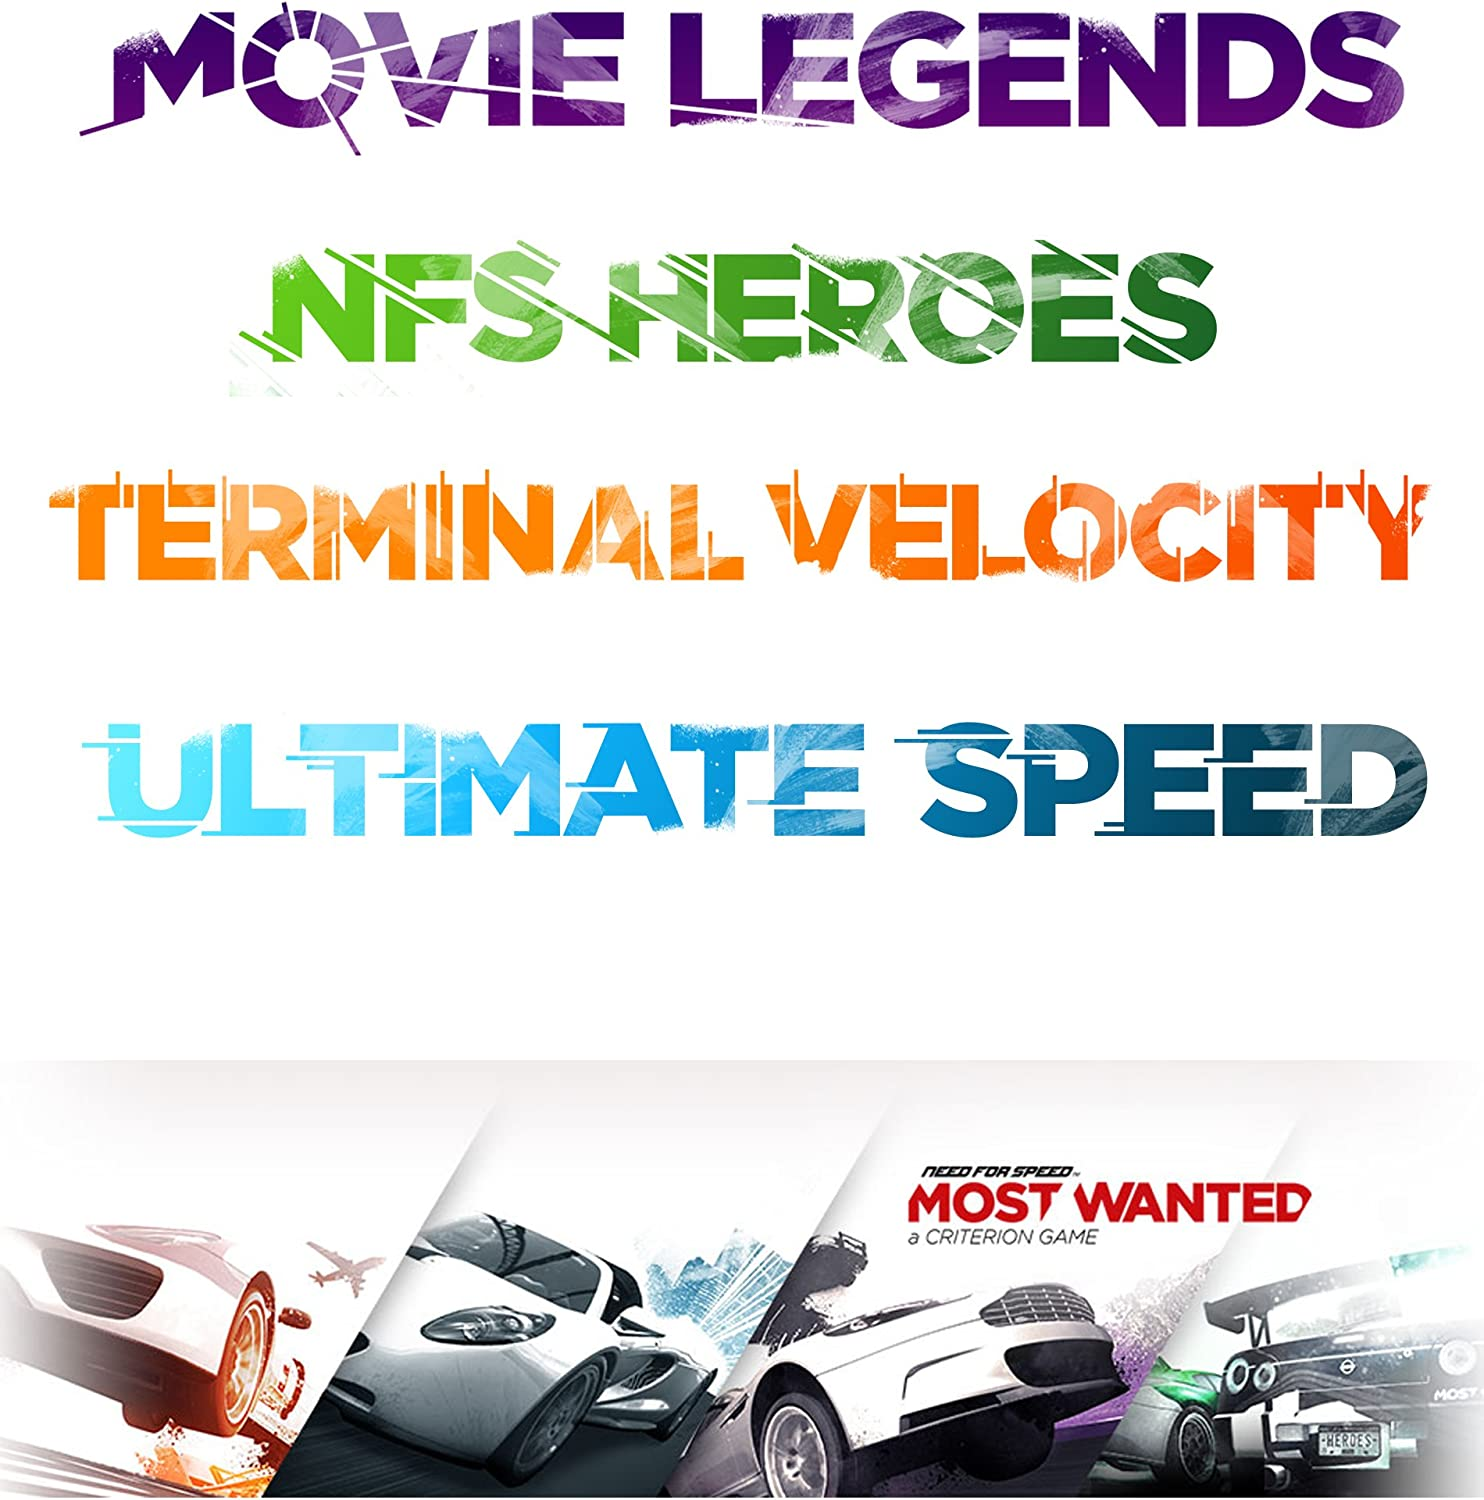 need for speed most wanted criterion origin key generator 2012 download